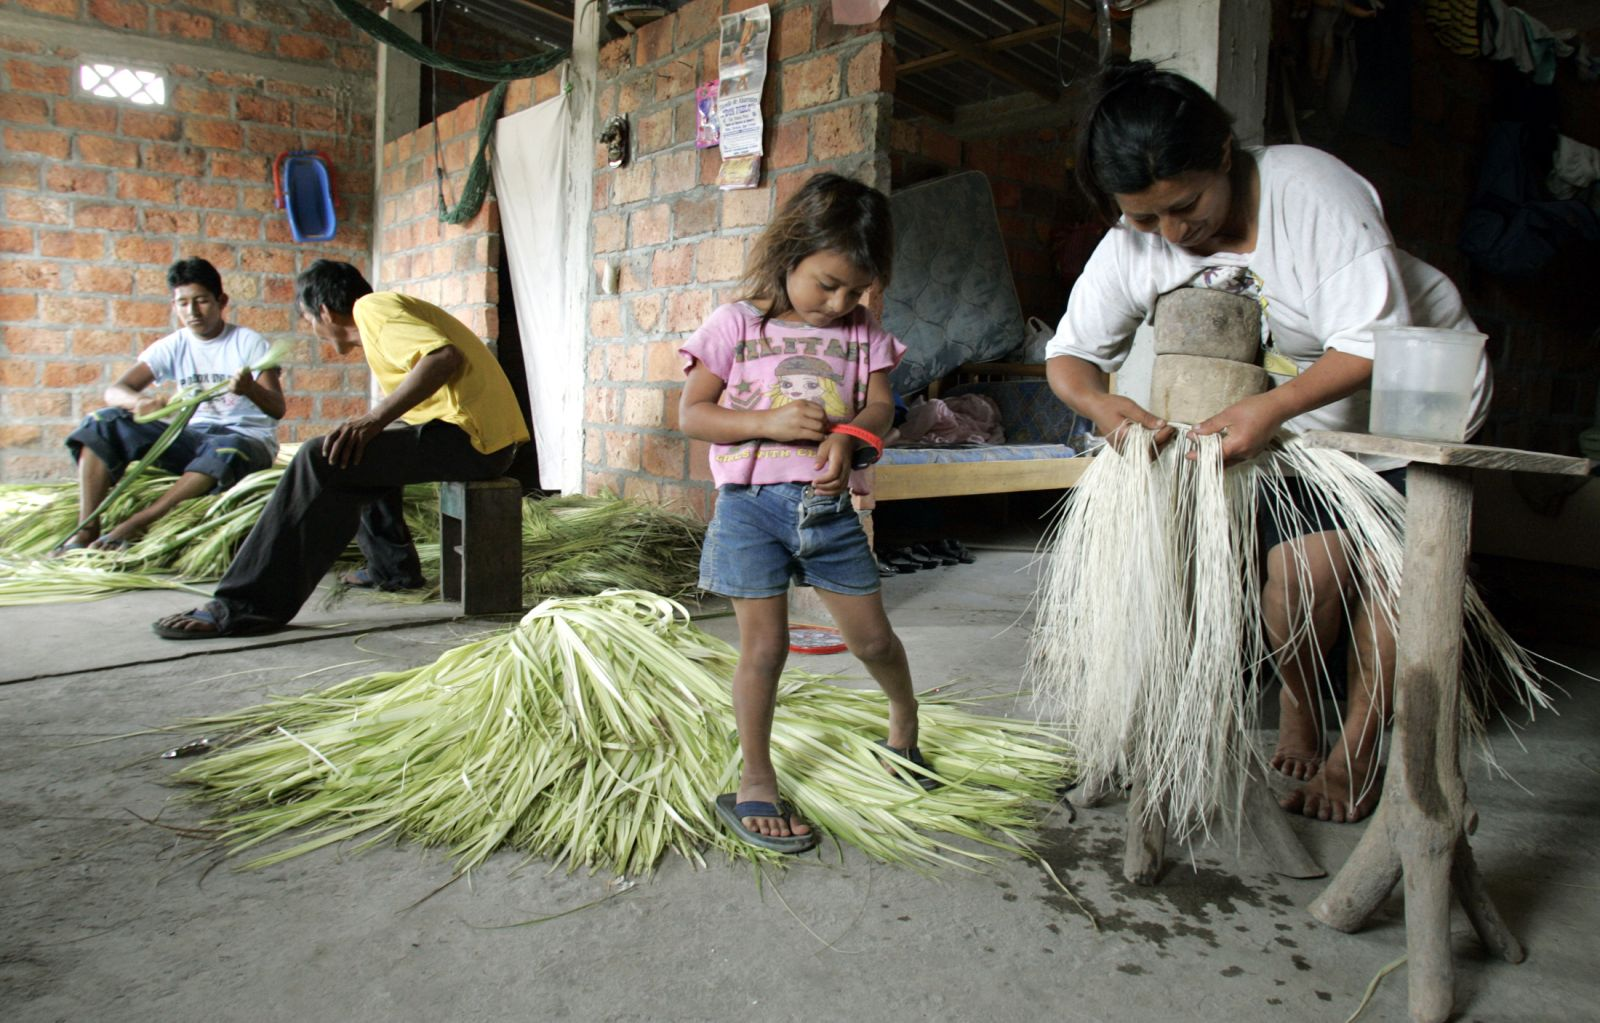 Weavers at work turning toquilla straw into hats. (Reuters/Guillermo Grunja)